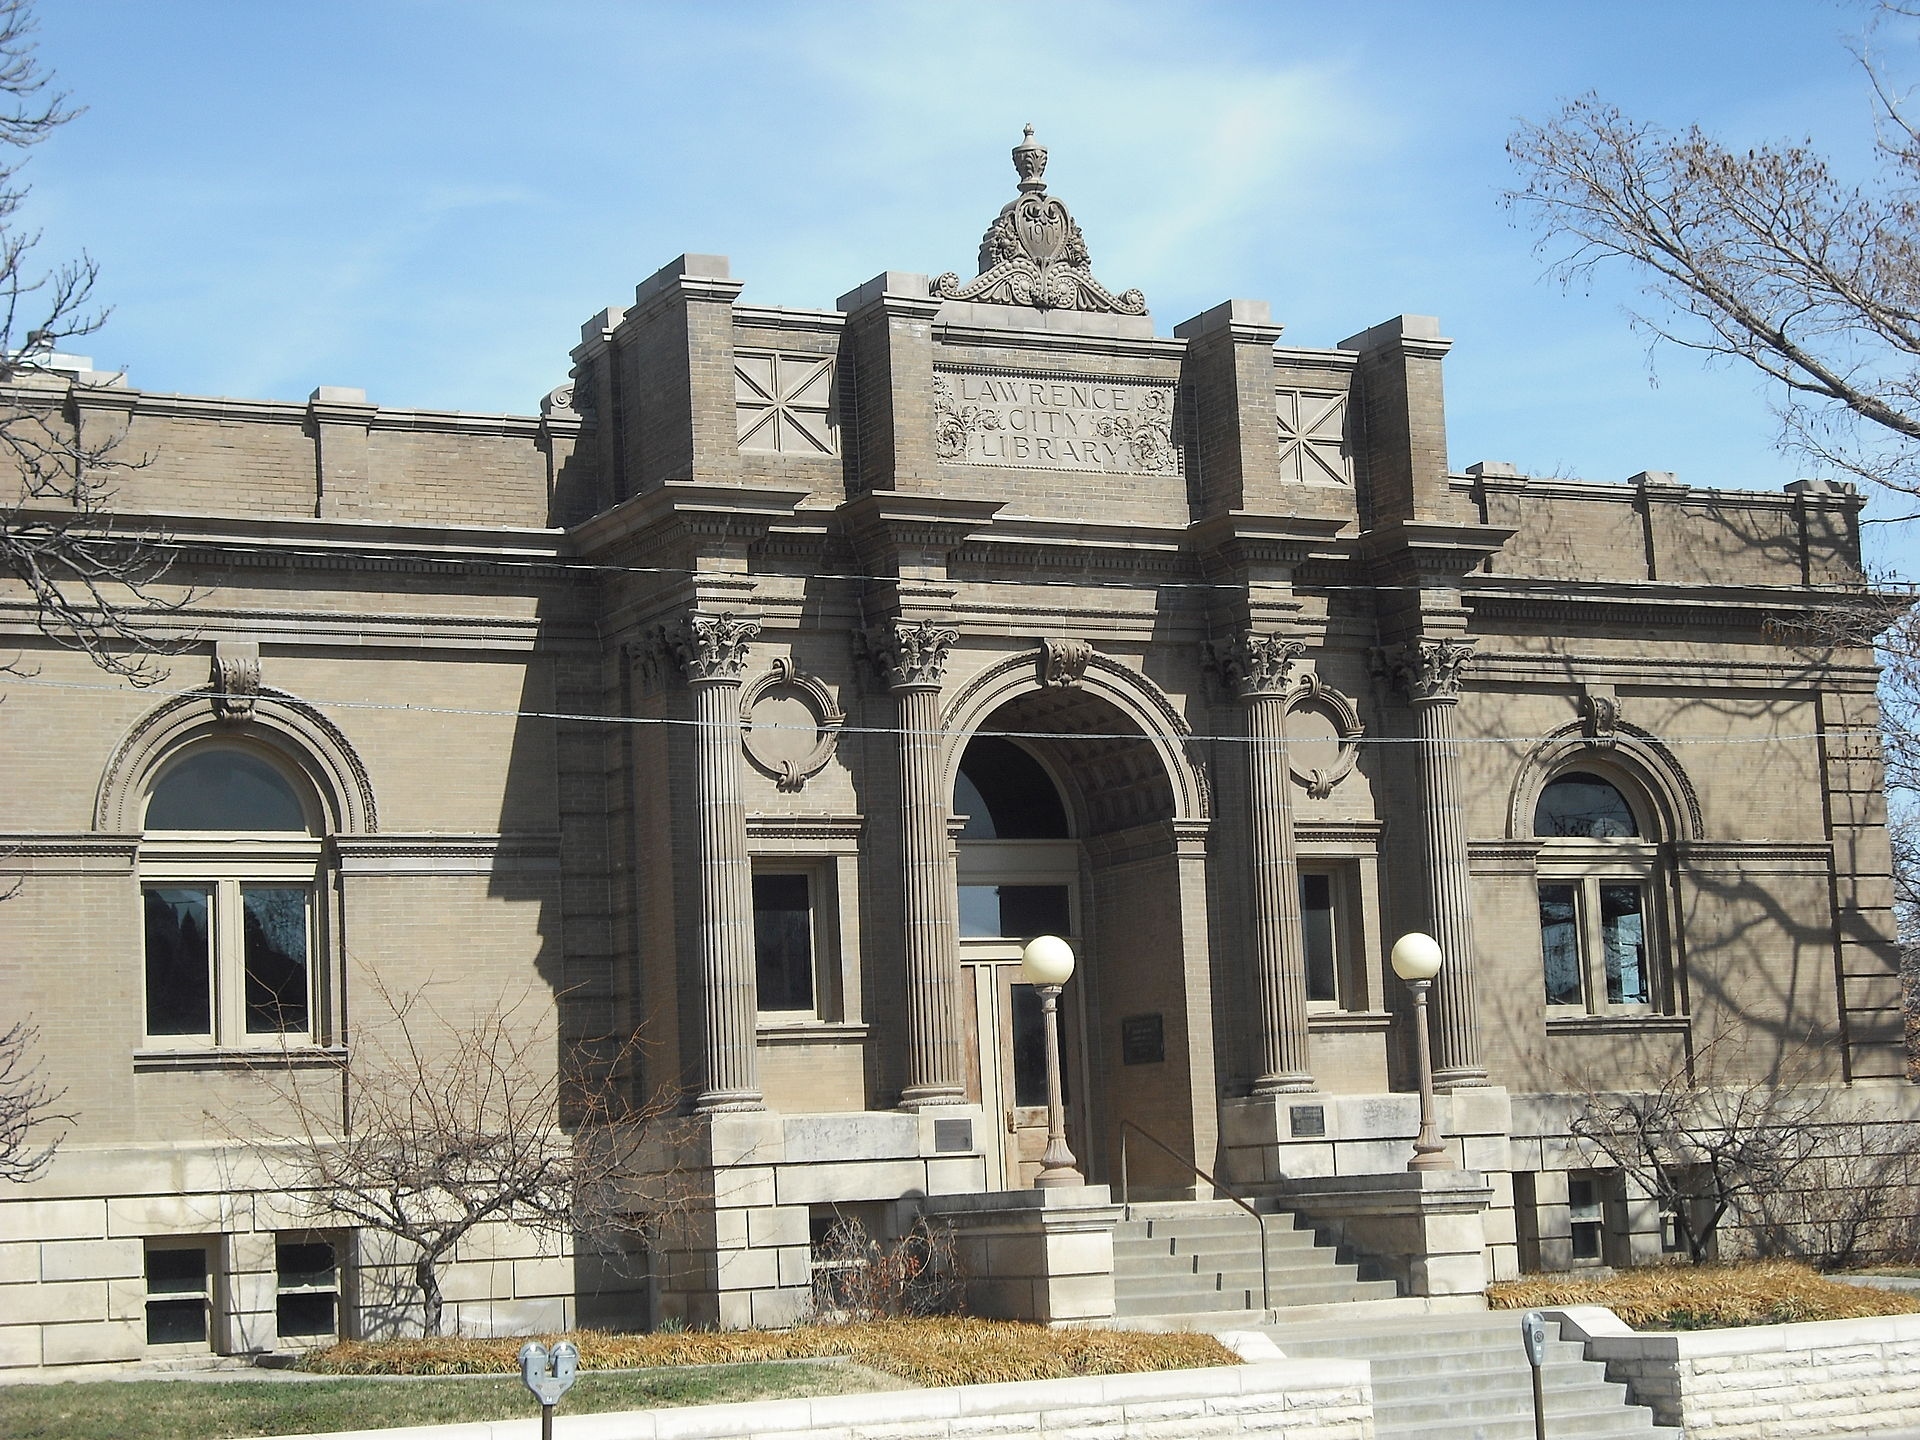 The Old Lawrence City Library was built in 1904 and operated as a library until 1972.